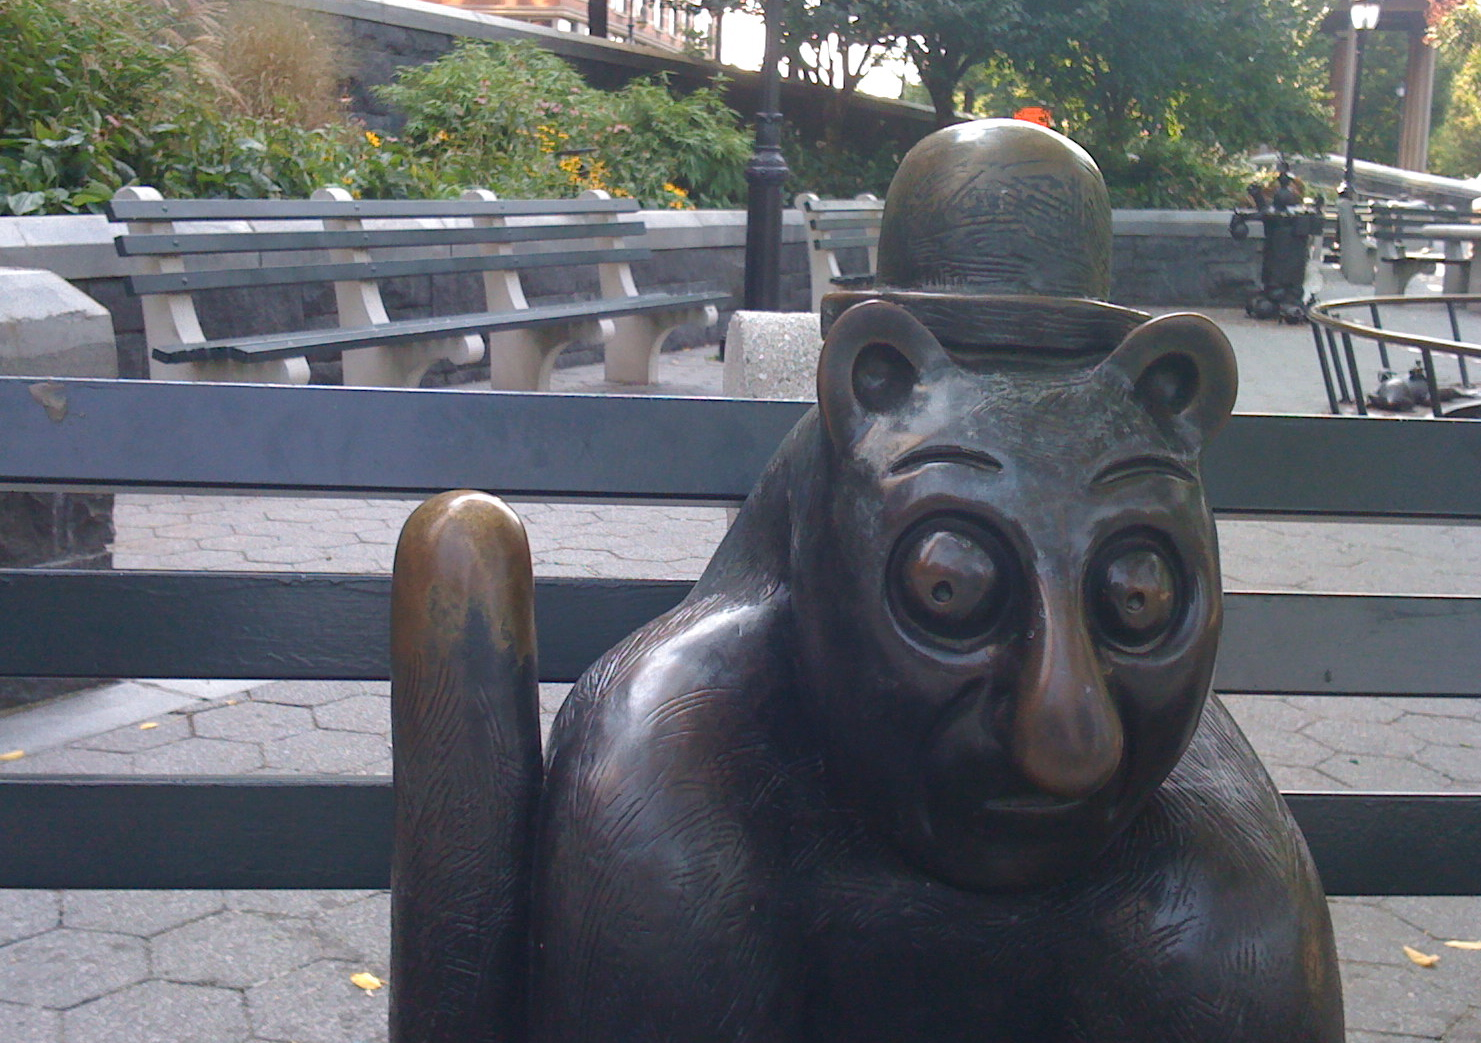 Photo, D. Takagi. Public Art, Battery Park City, Tom Otterness'. THE REAL WORLD is a fanciful world—whimsical figures of people and animals doing ordinary things.